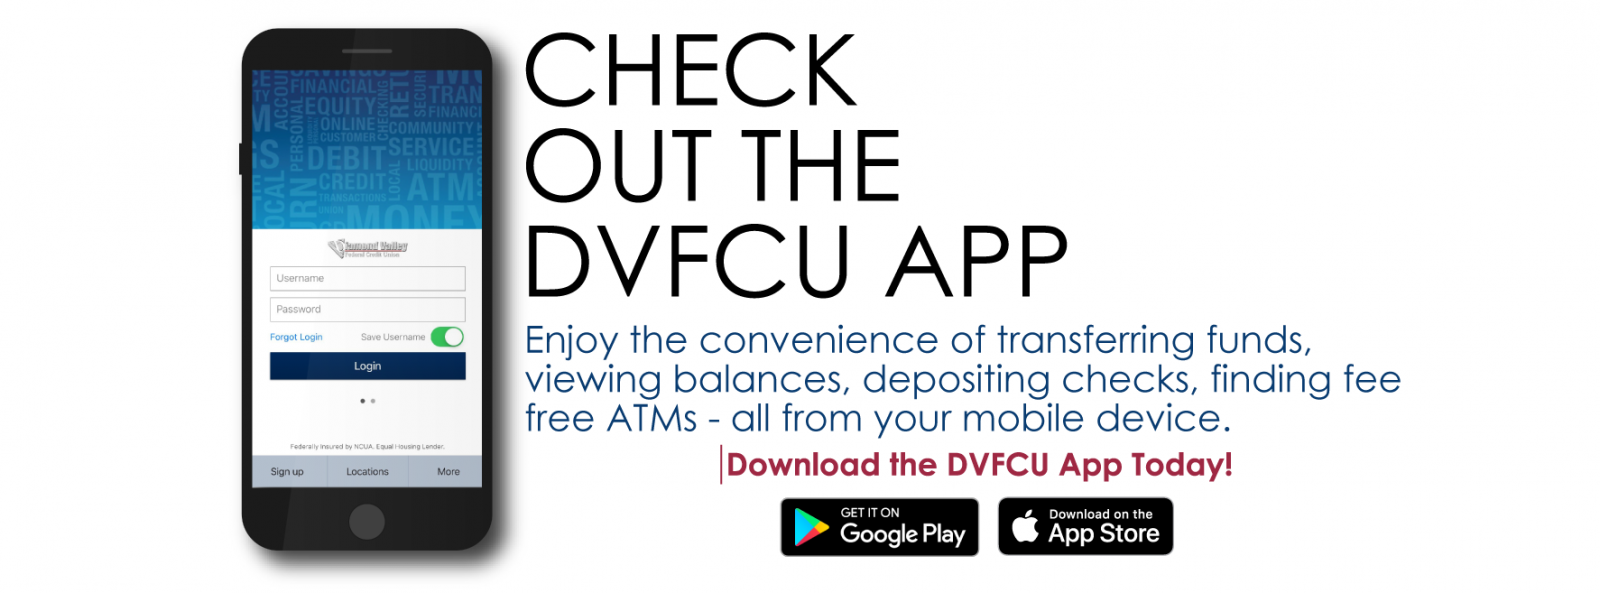 Check out the DVFCU App. Enjoy the convenience of transferring funds, viewing balances, depositing checks, finding fee free ATMs - all from your mobile device. Download the DVFCU App Today!